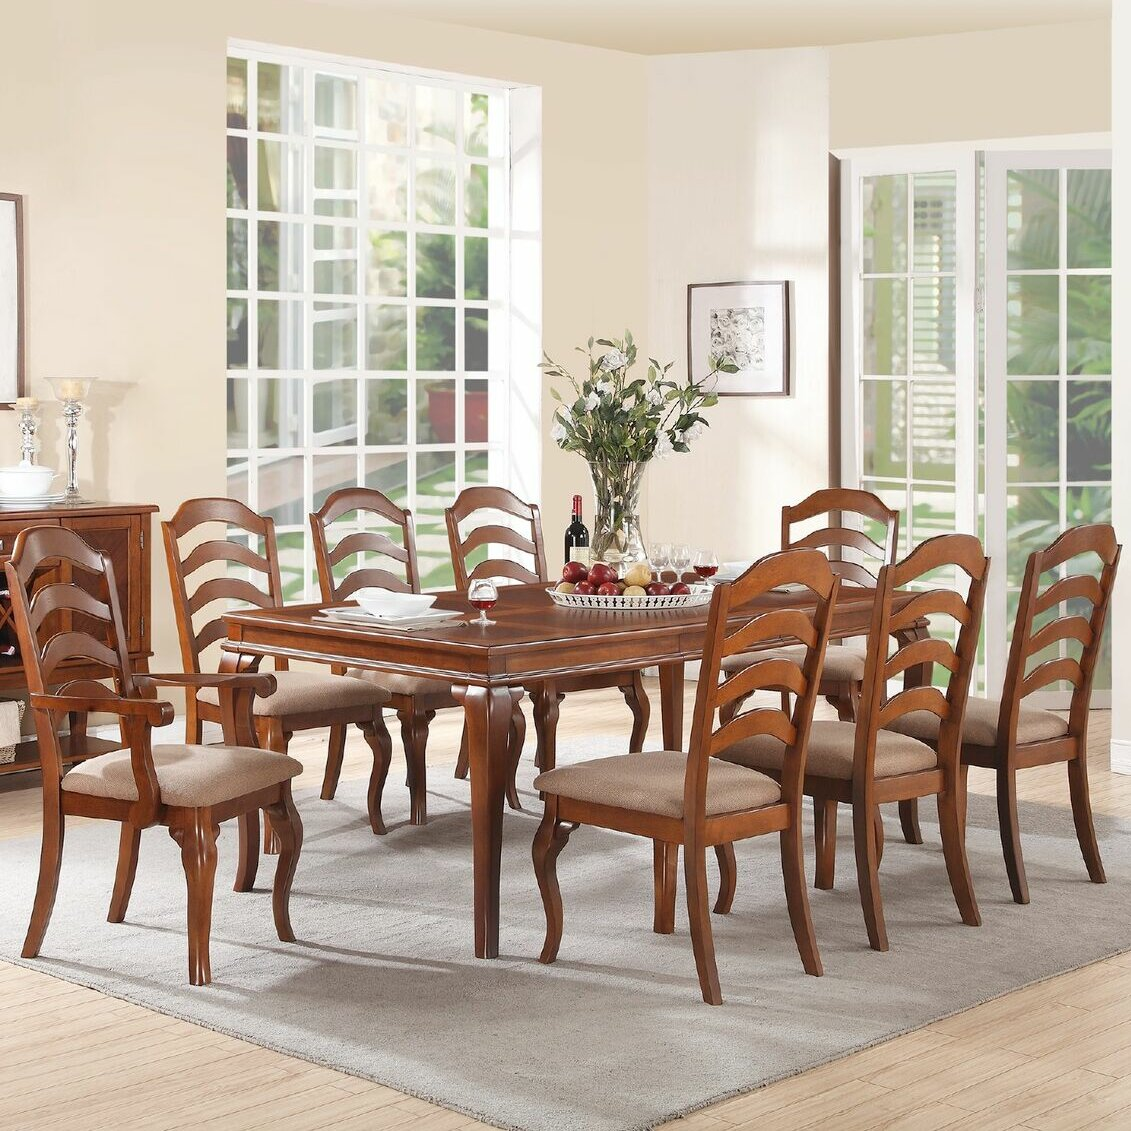 Infini furnishings flavien 9 piece dining set reviews for Dining room furniture 9 piece